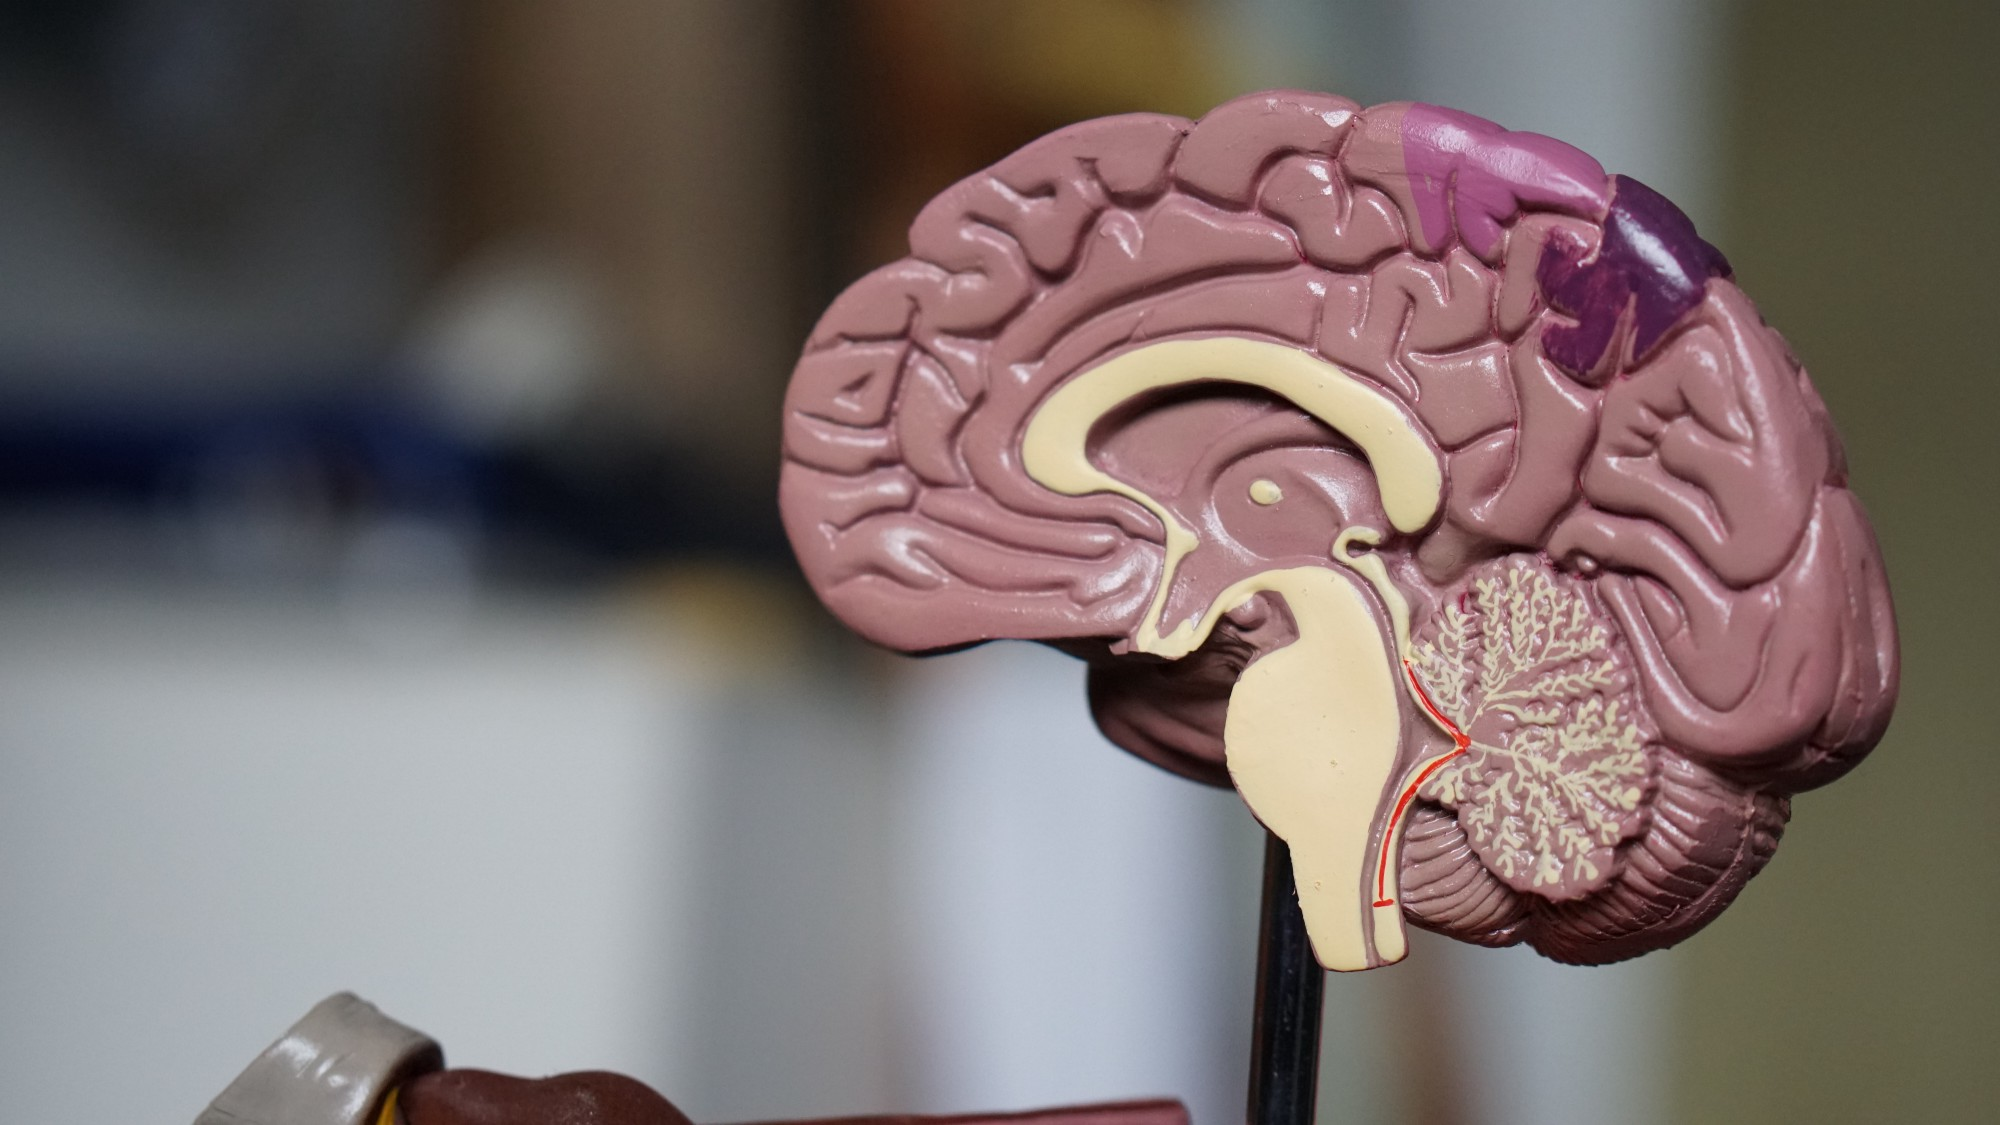 A plastic model of the human brain